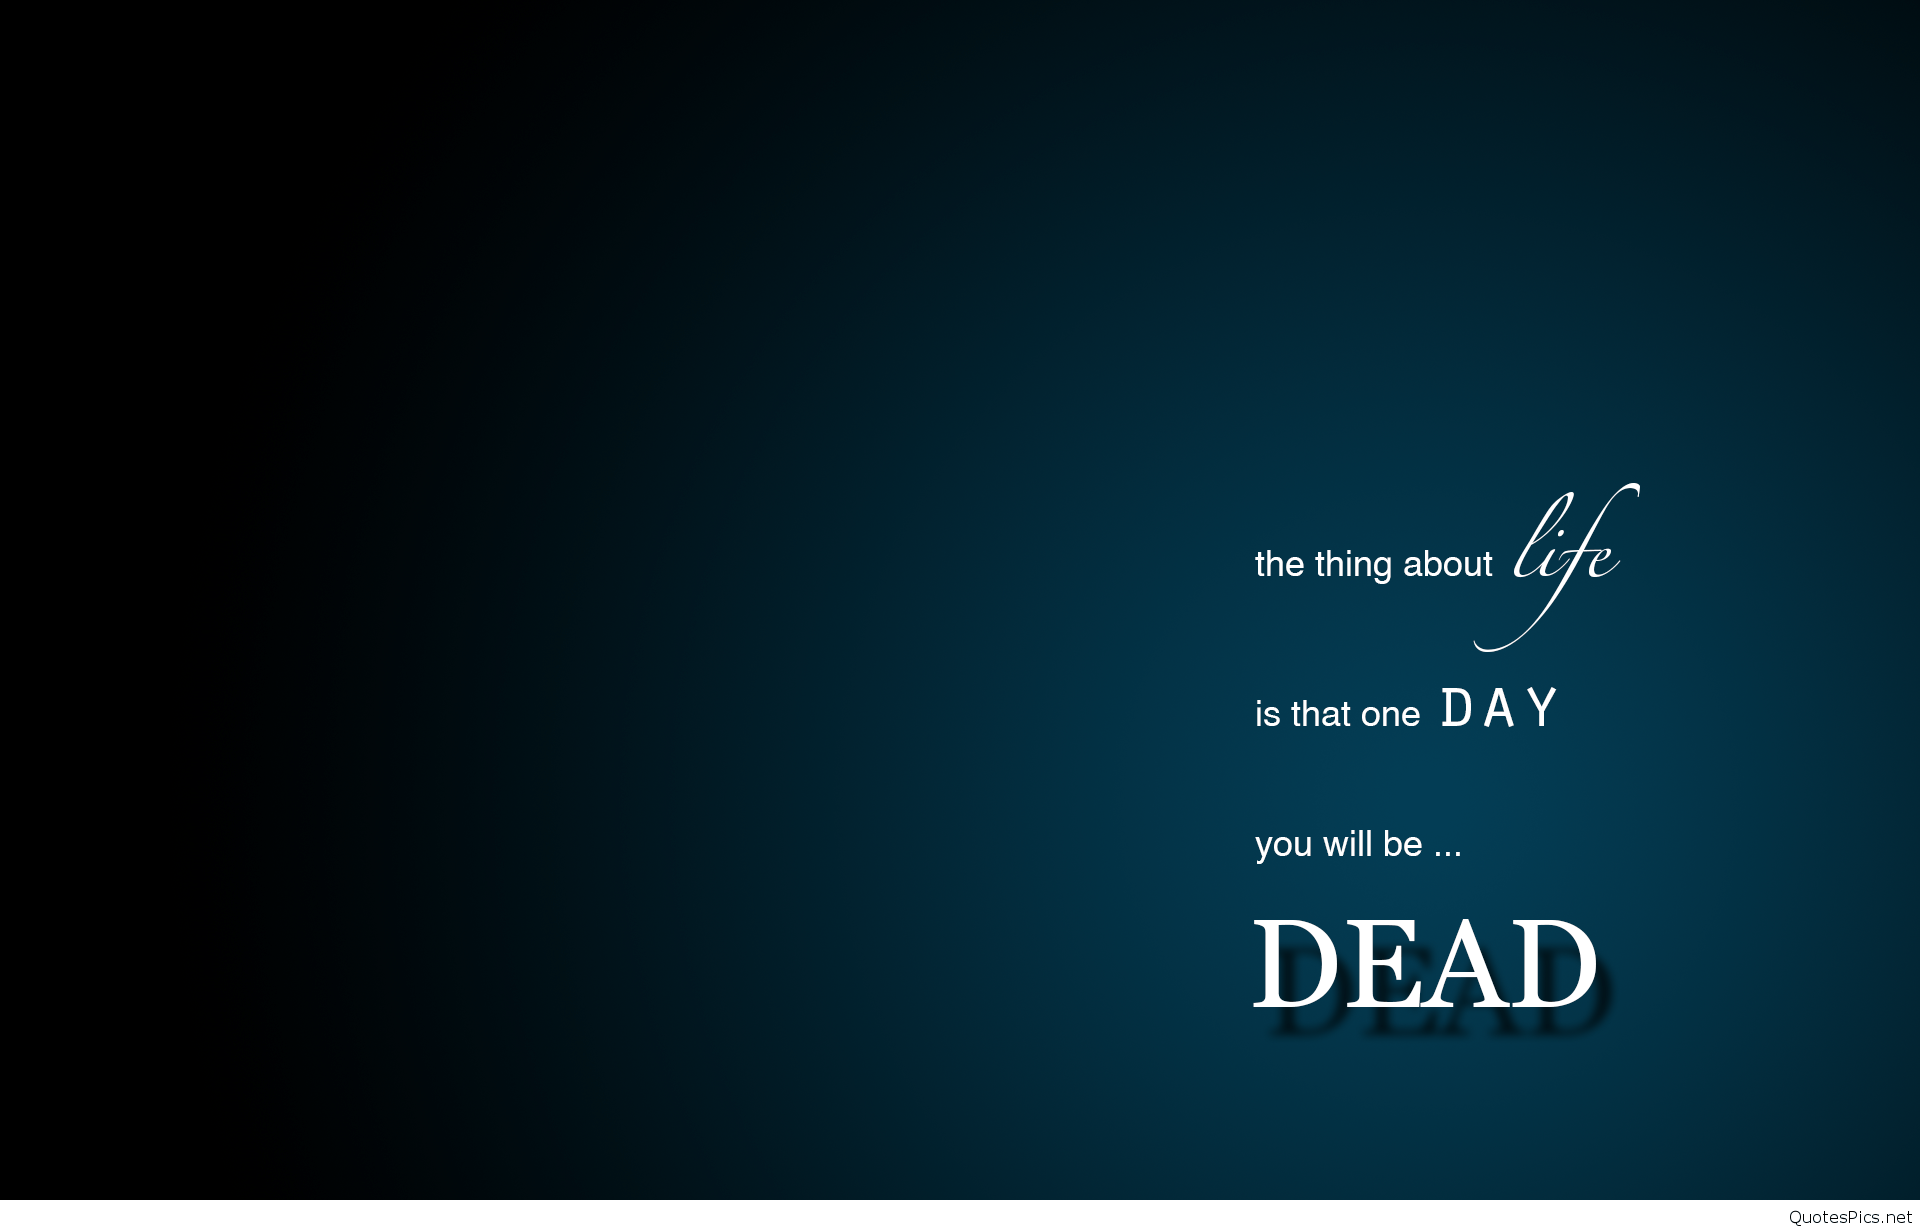 Life Quotes Wallpapers Top Free Life Quotes Backgrounds Wallpaperaccess